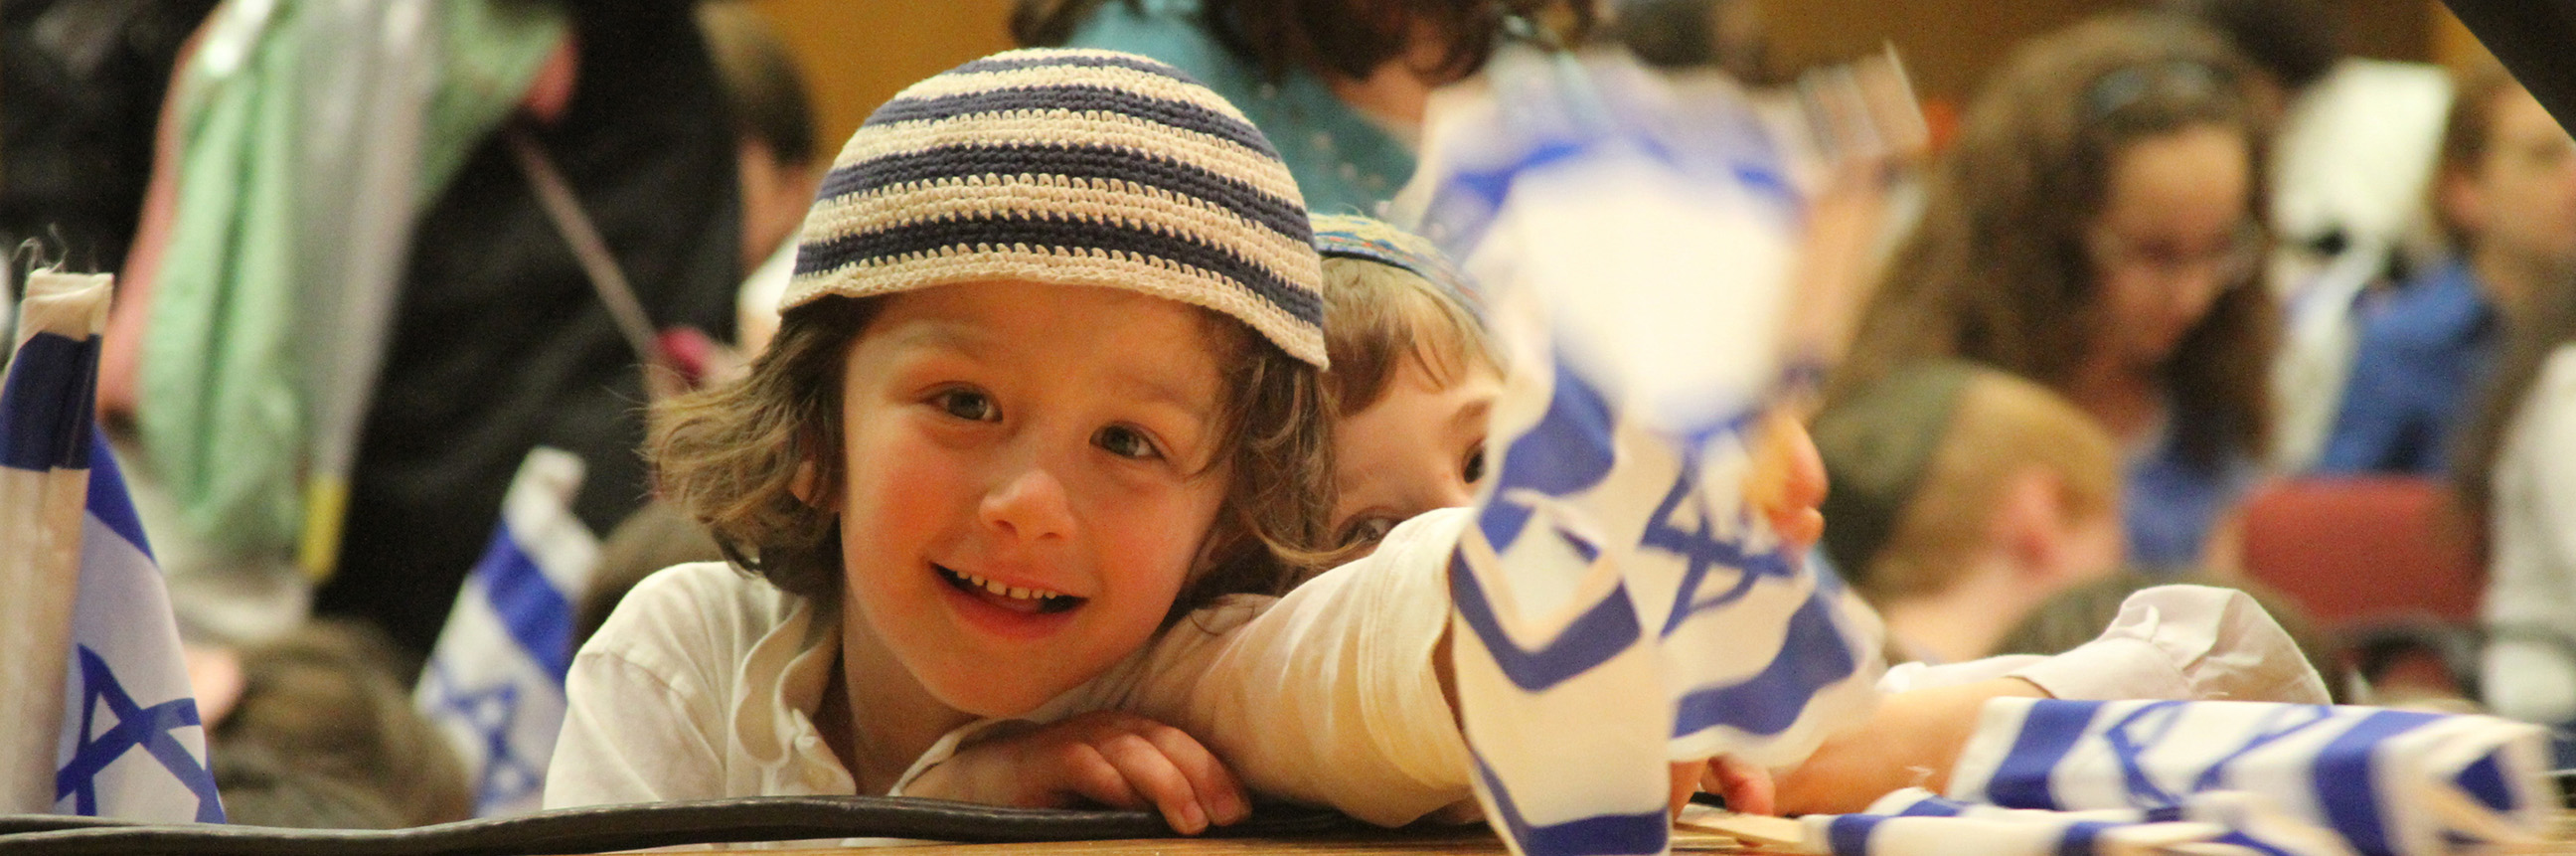 JCC of the Lehigh Valley Allentown Jewish Programming Events Life